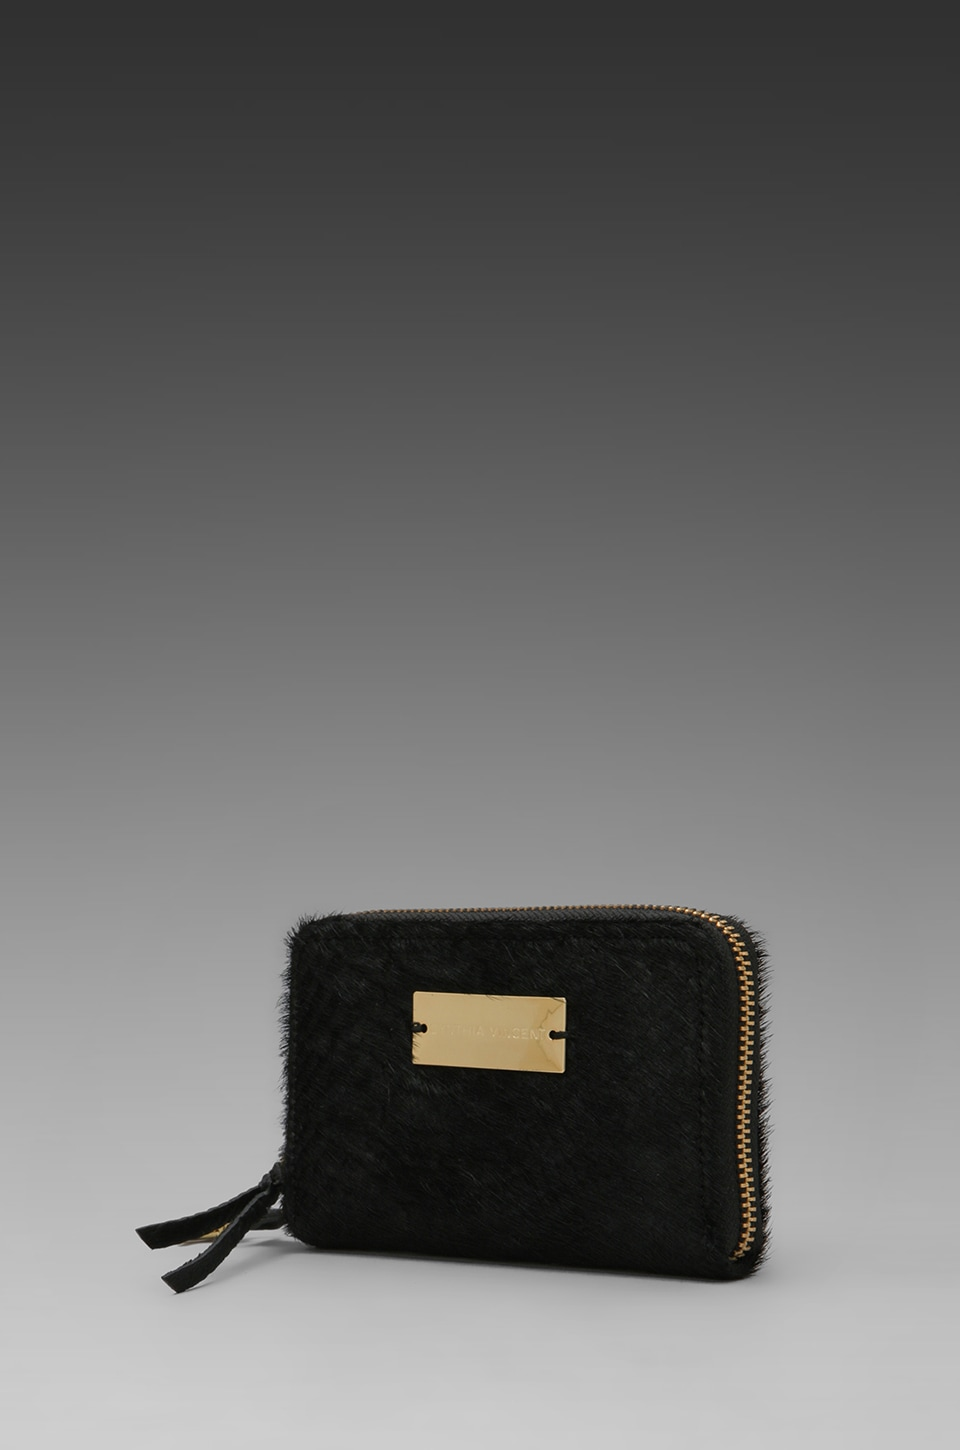 Twelfth Street By Cynthia Vincent Phone Wallet in Black Reptile